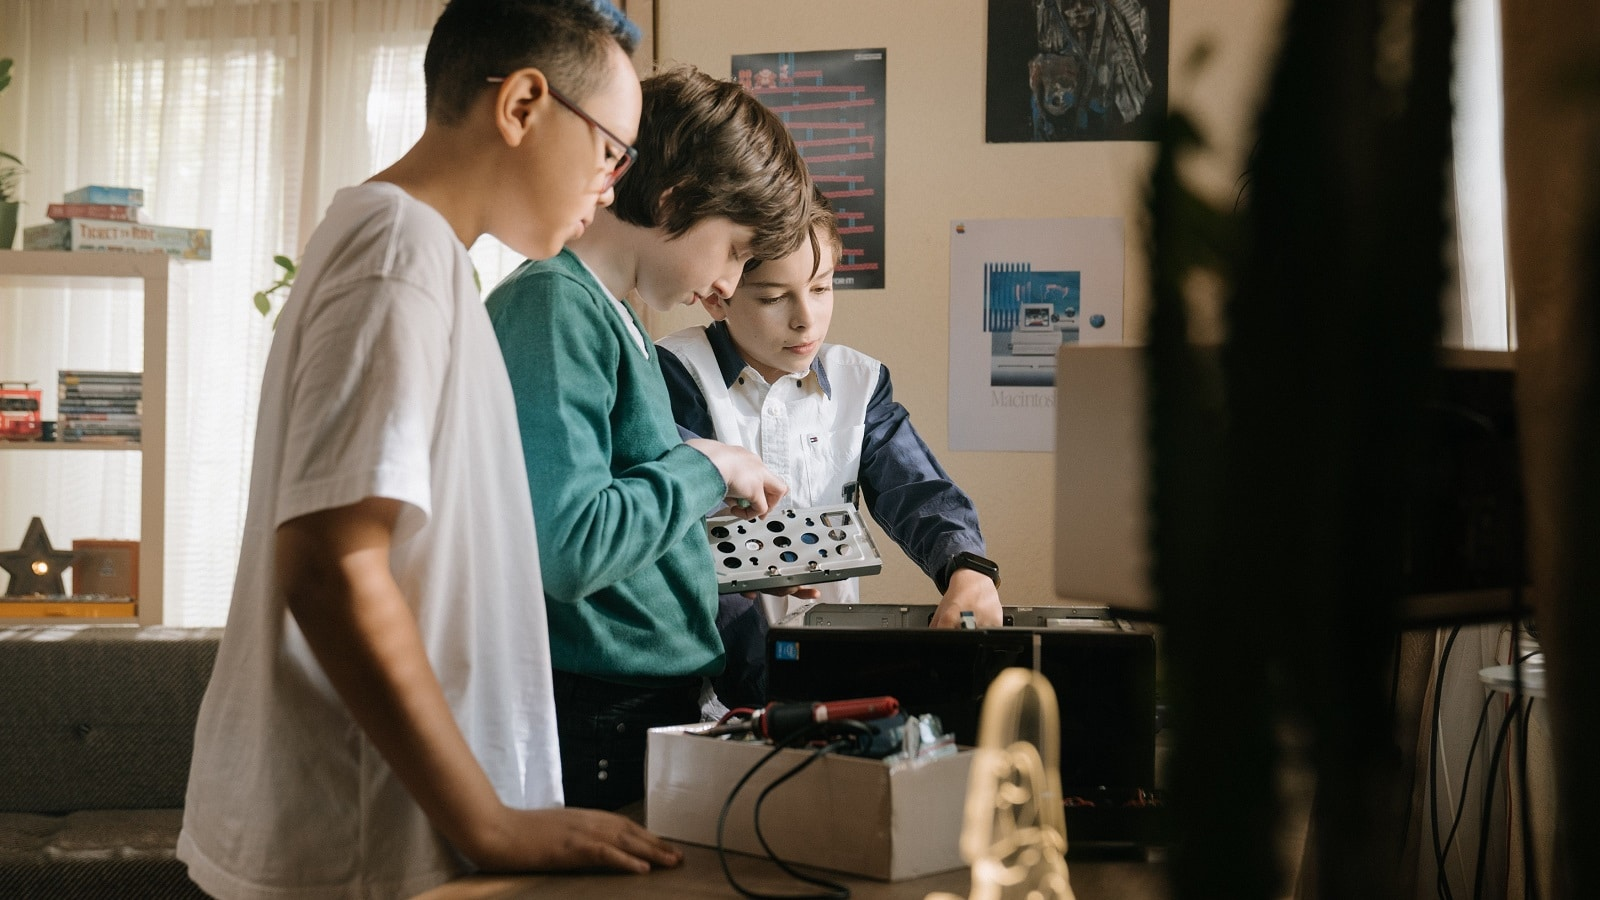 Three young students study a computer system